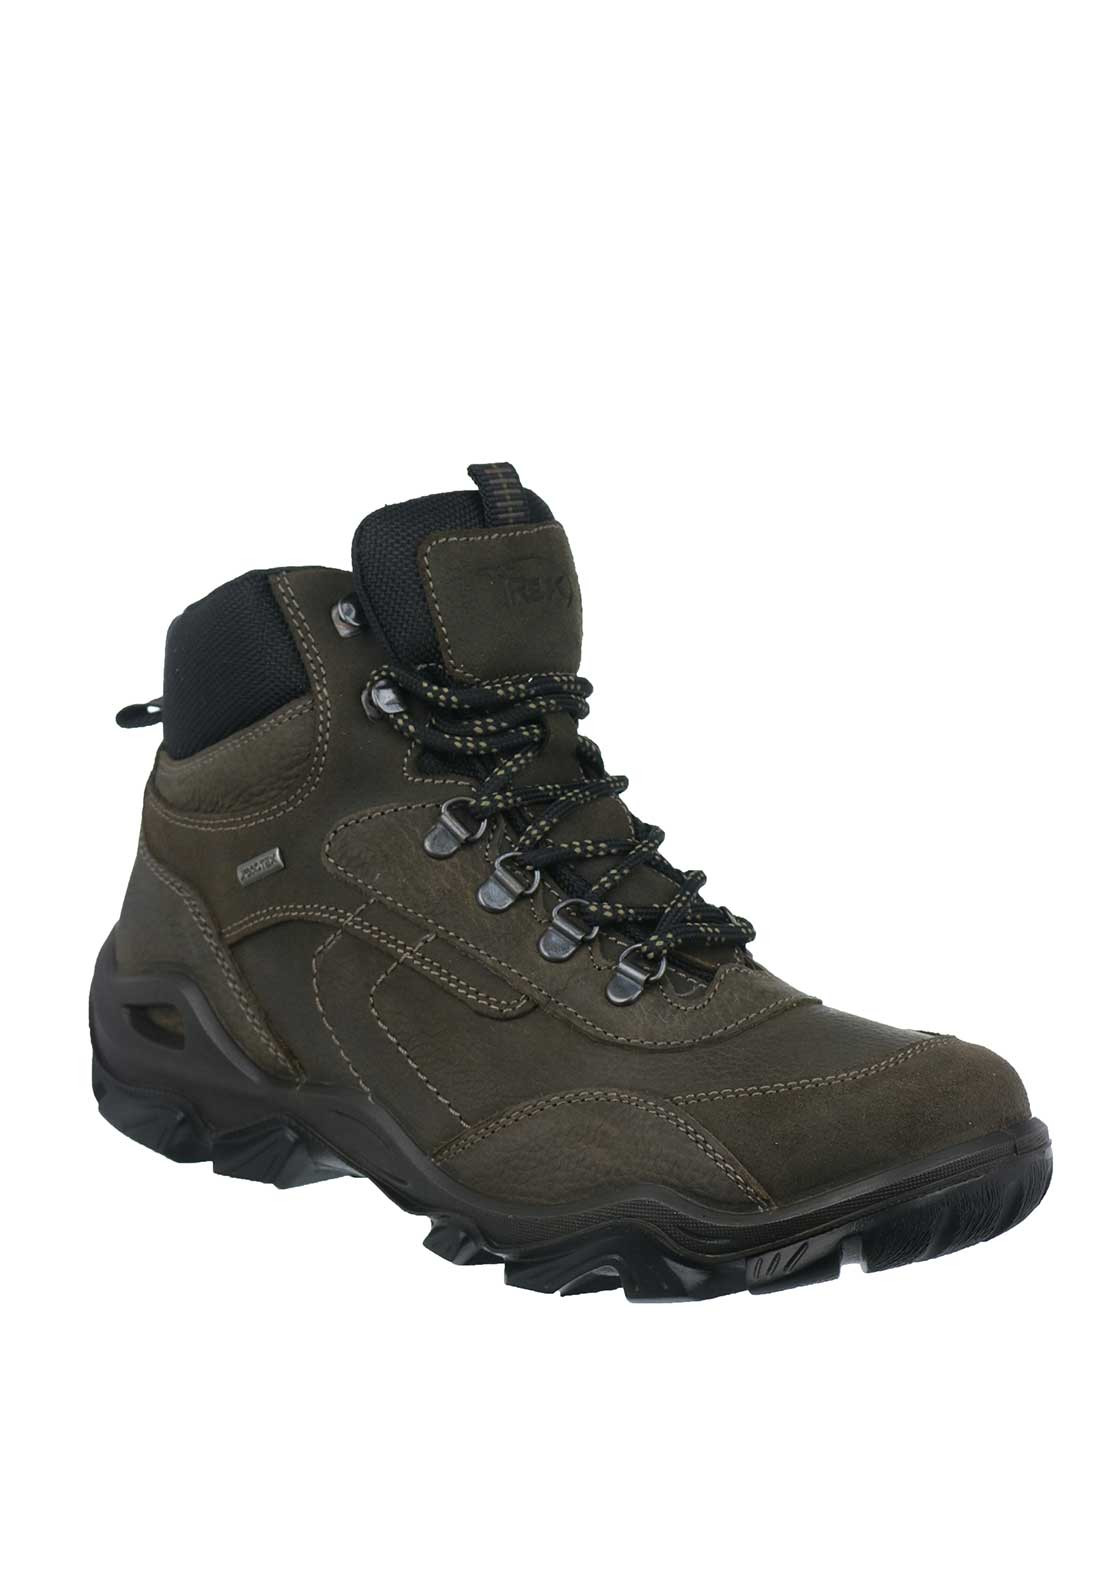 IMAC Mens Leather Mid Trek Waterproof Lace Up Comfort Fit Boots, Brown